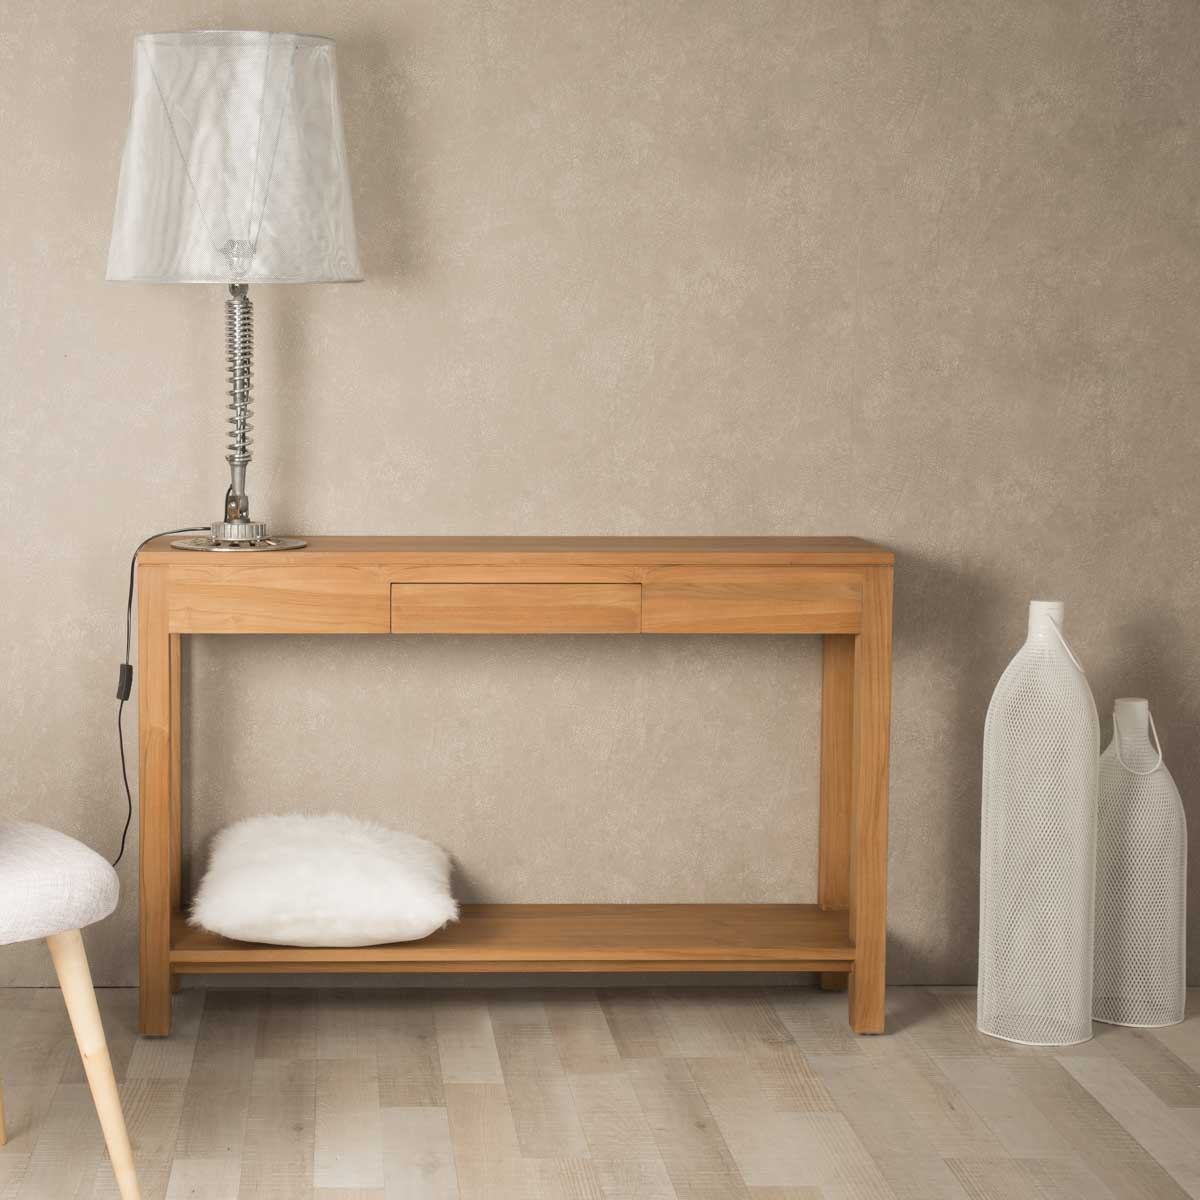 Console De Salon En Bois De Teck Massif Moderne Rectangle  # Salon En Bois Massif